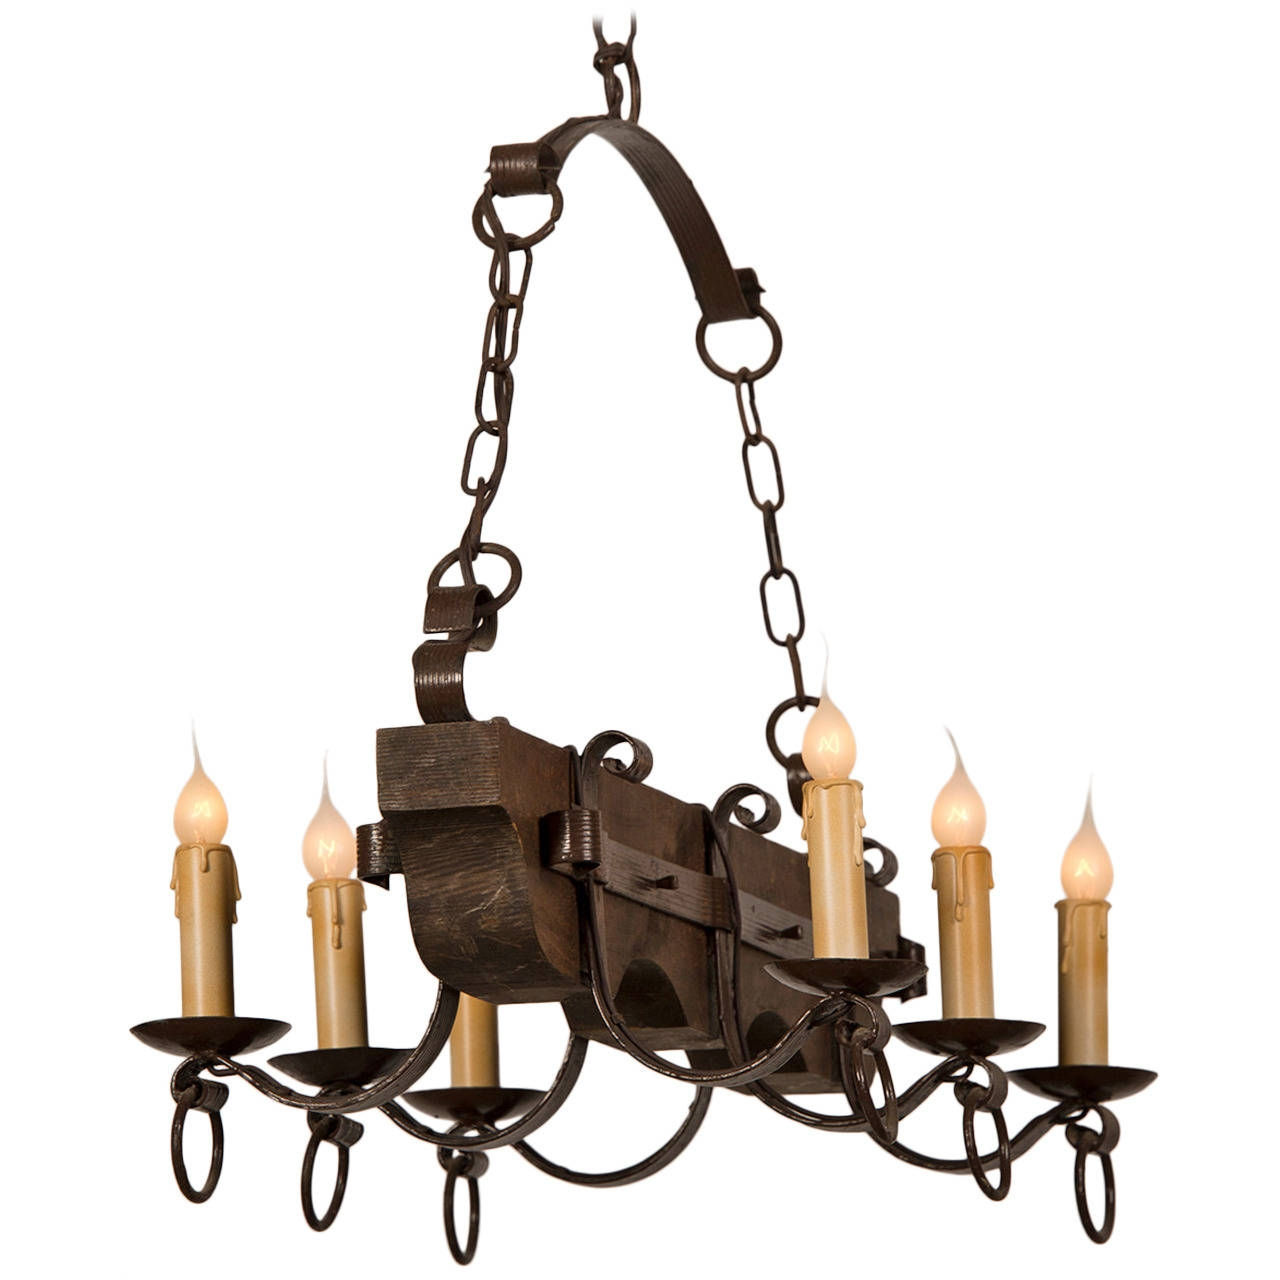 Wrought Iron Rectangular Chandelier Vintage Wrought Iron Chandelier Chandelier Ideas